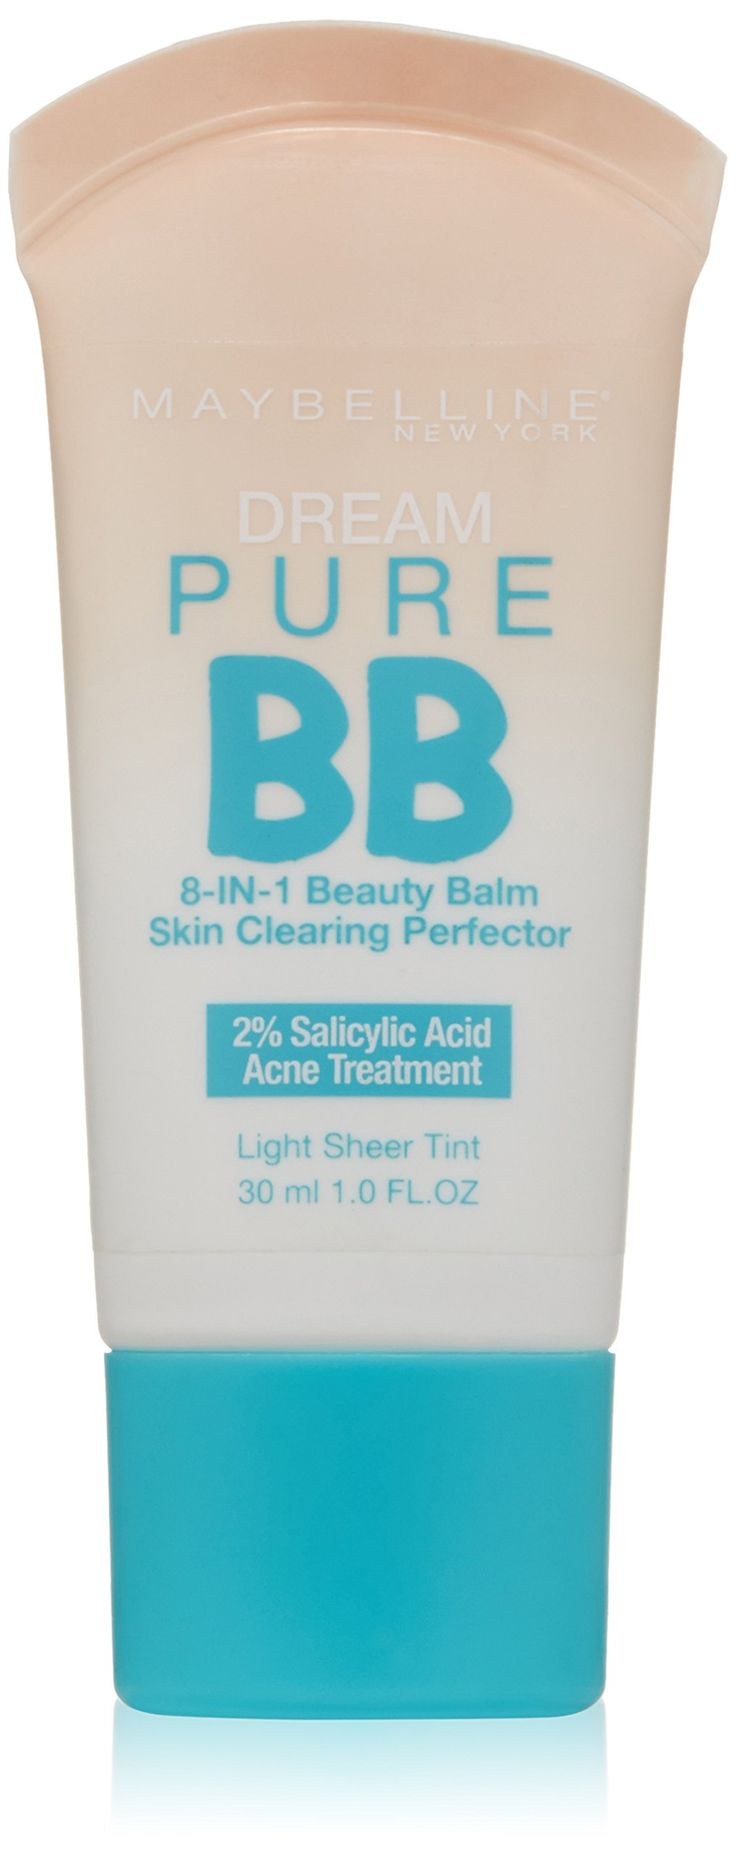 Best BB Creams for Acne Prone Skin (2015's TOP 10)